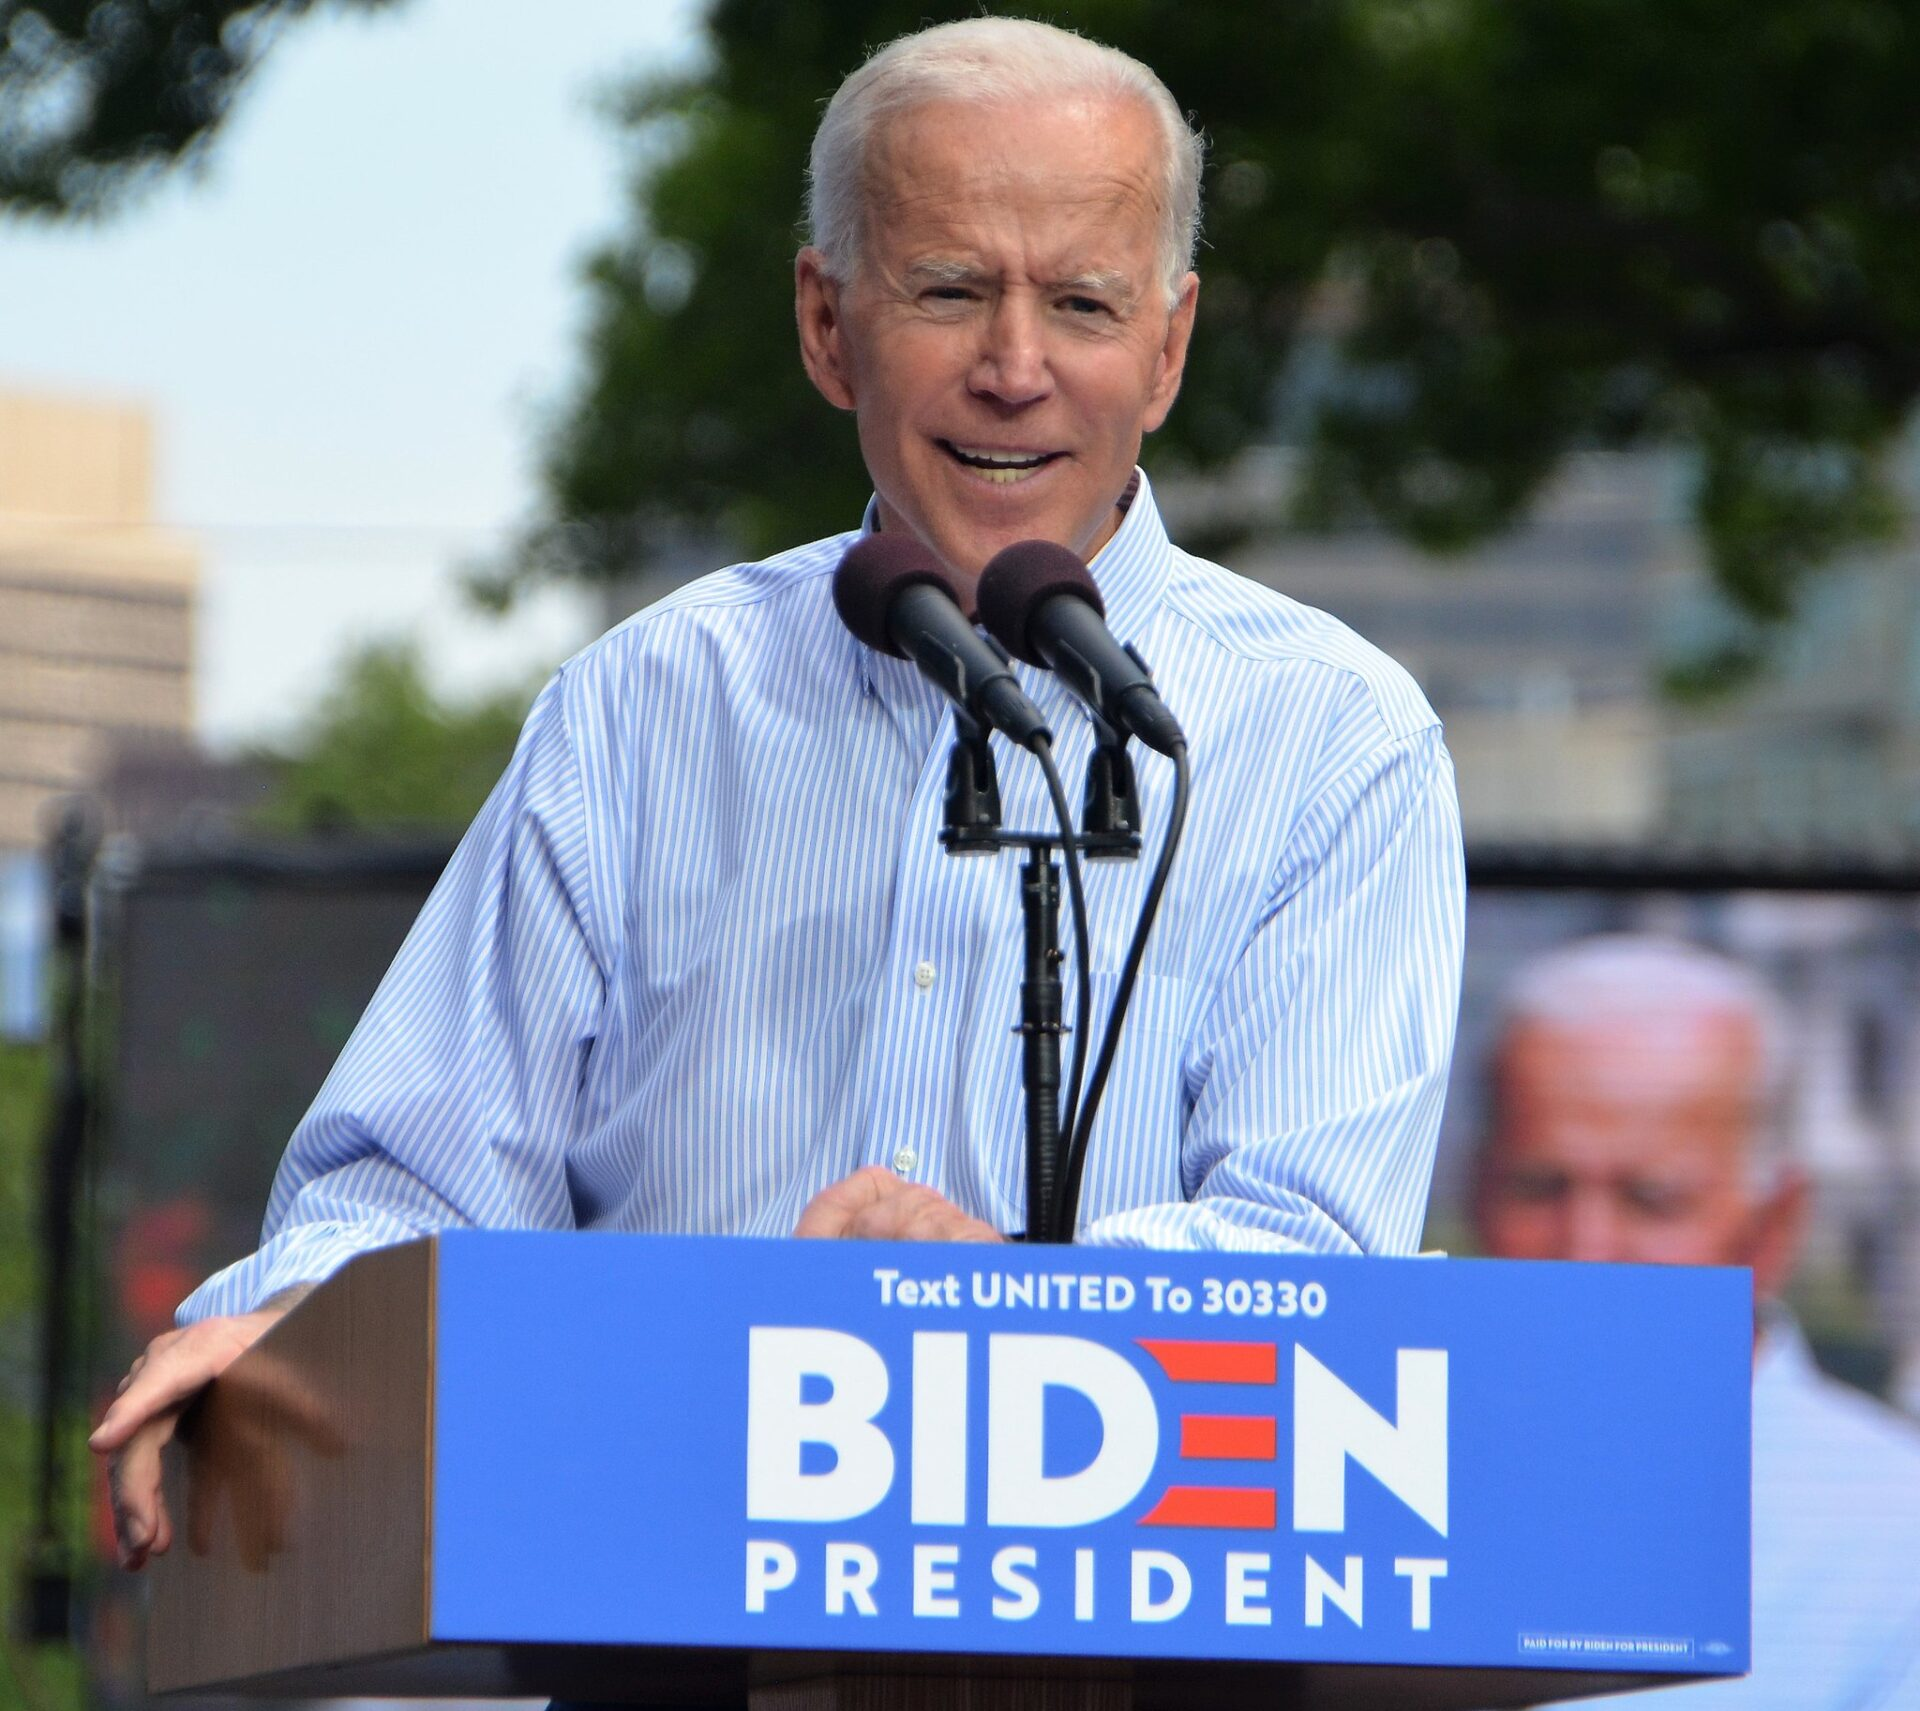 President's 'Word as a Biden' Isn't Worth Much, His Record Shows